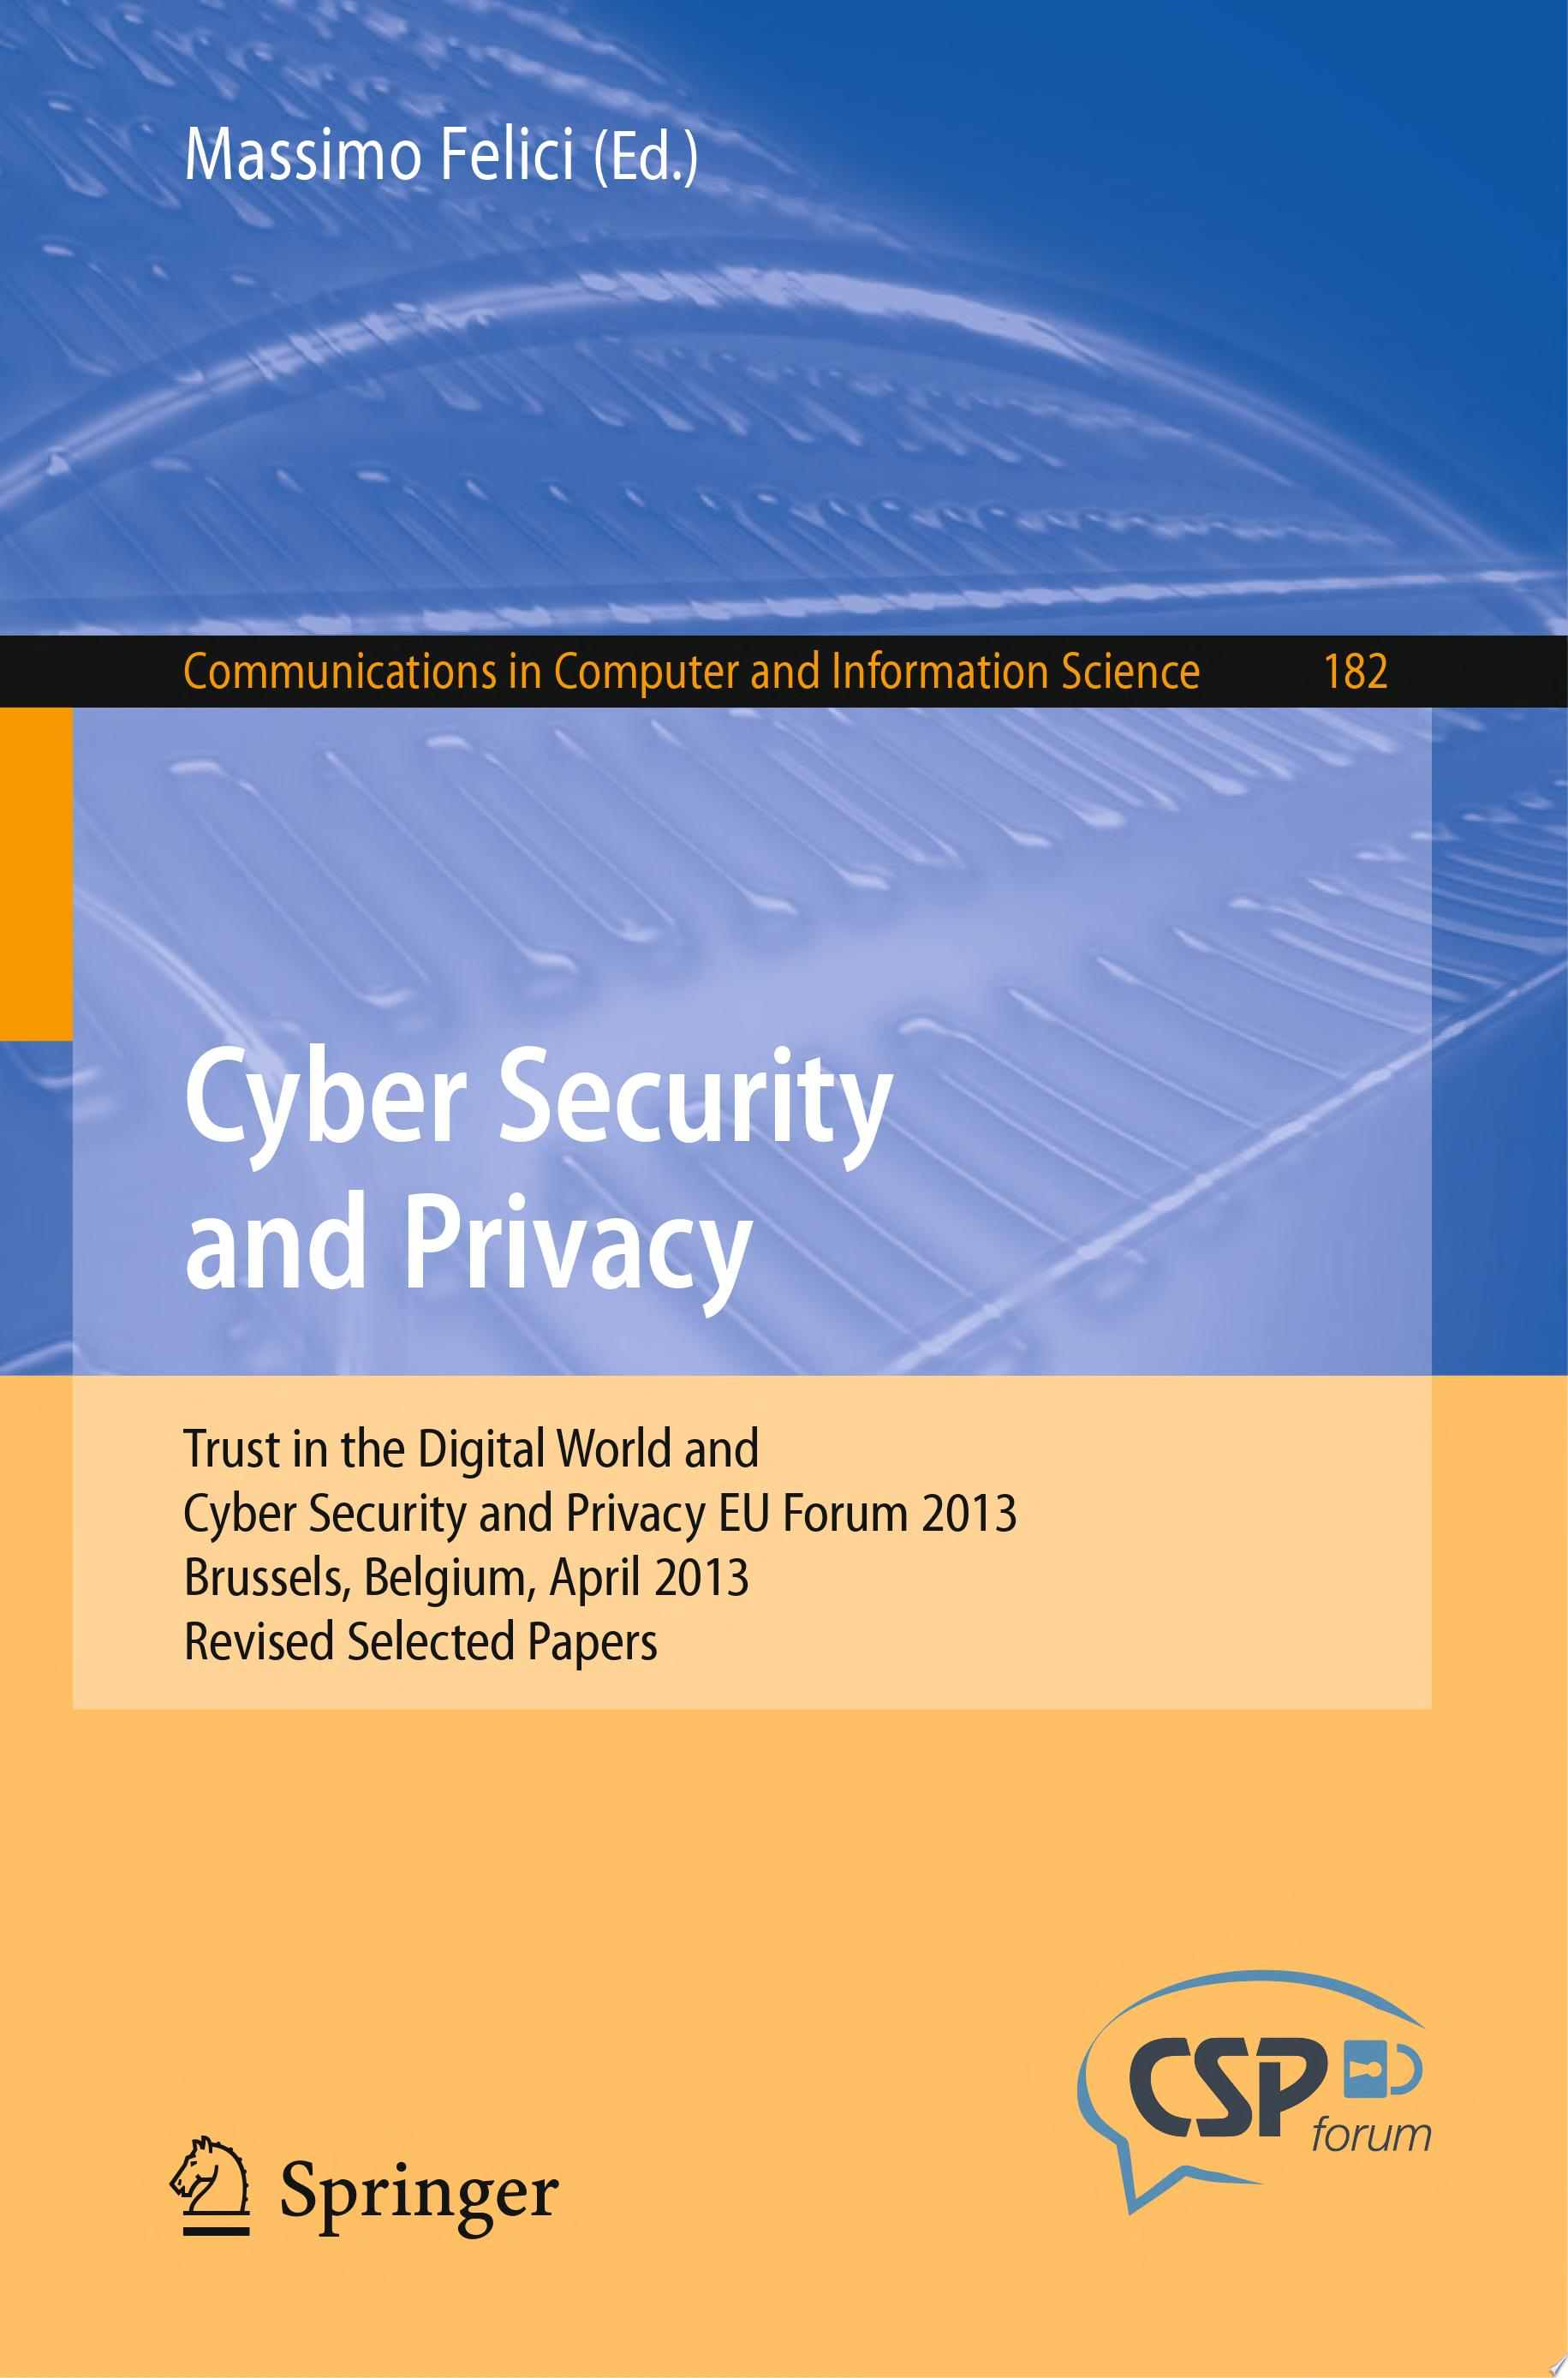 Cyber Security and Privacy